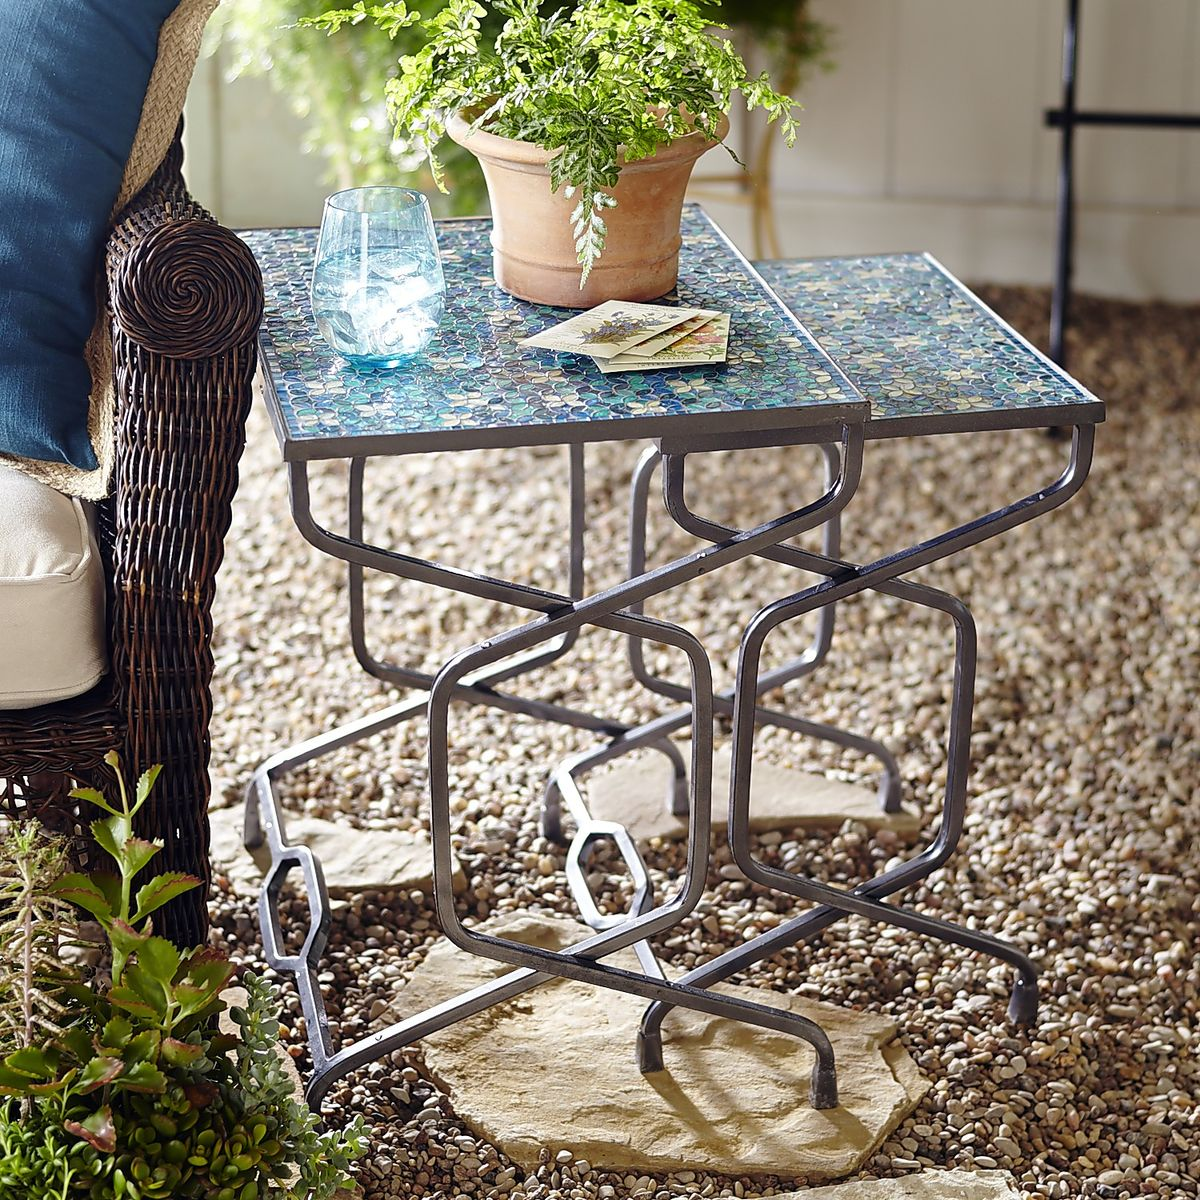 {The mosaic tile top of these nesting tables catch the sunlight, reminiscent of the ocean waves. From:  Pier 1 Imports .}